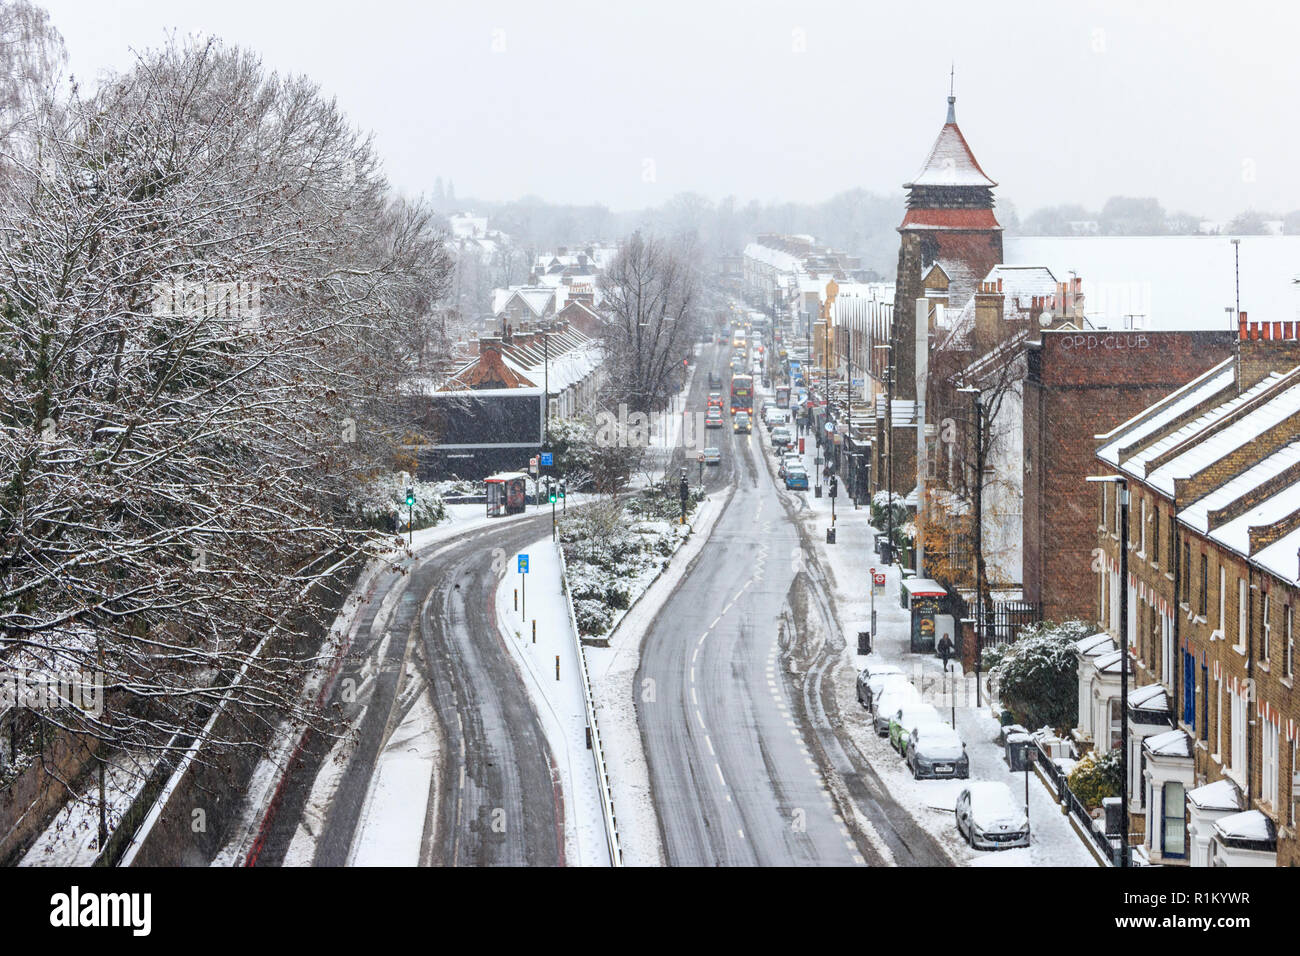 The A1 Archway Road, looking north from Hornsey Lane Bridge, London, UK, in the snow. St. Augustine's Church in the right. - Stock Image